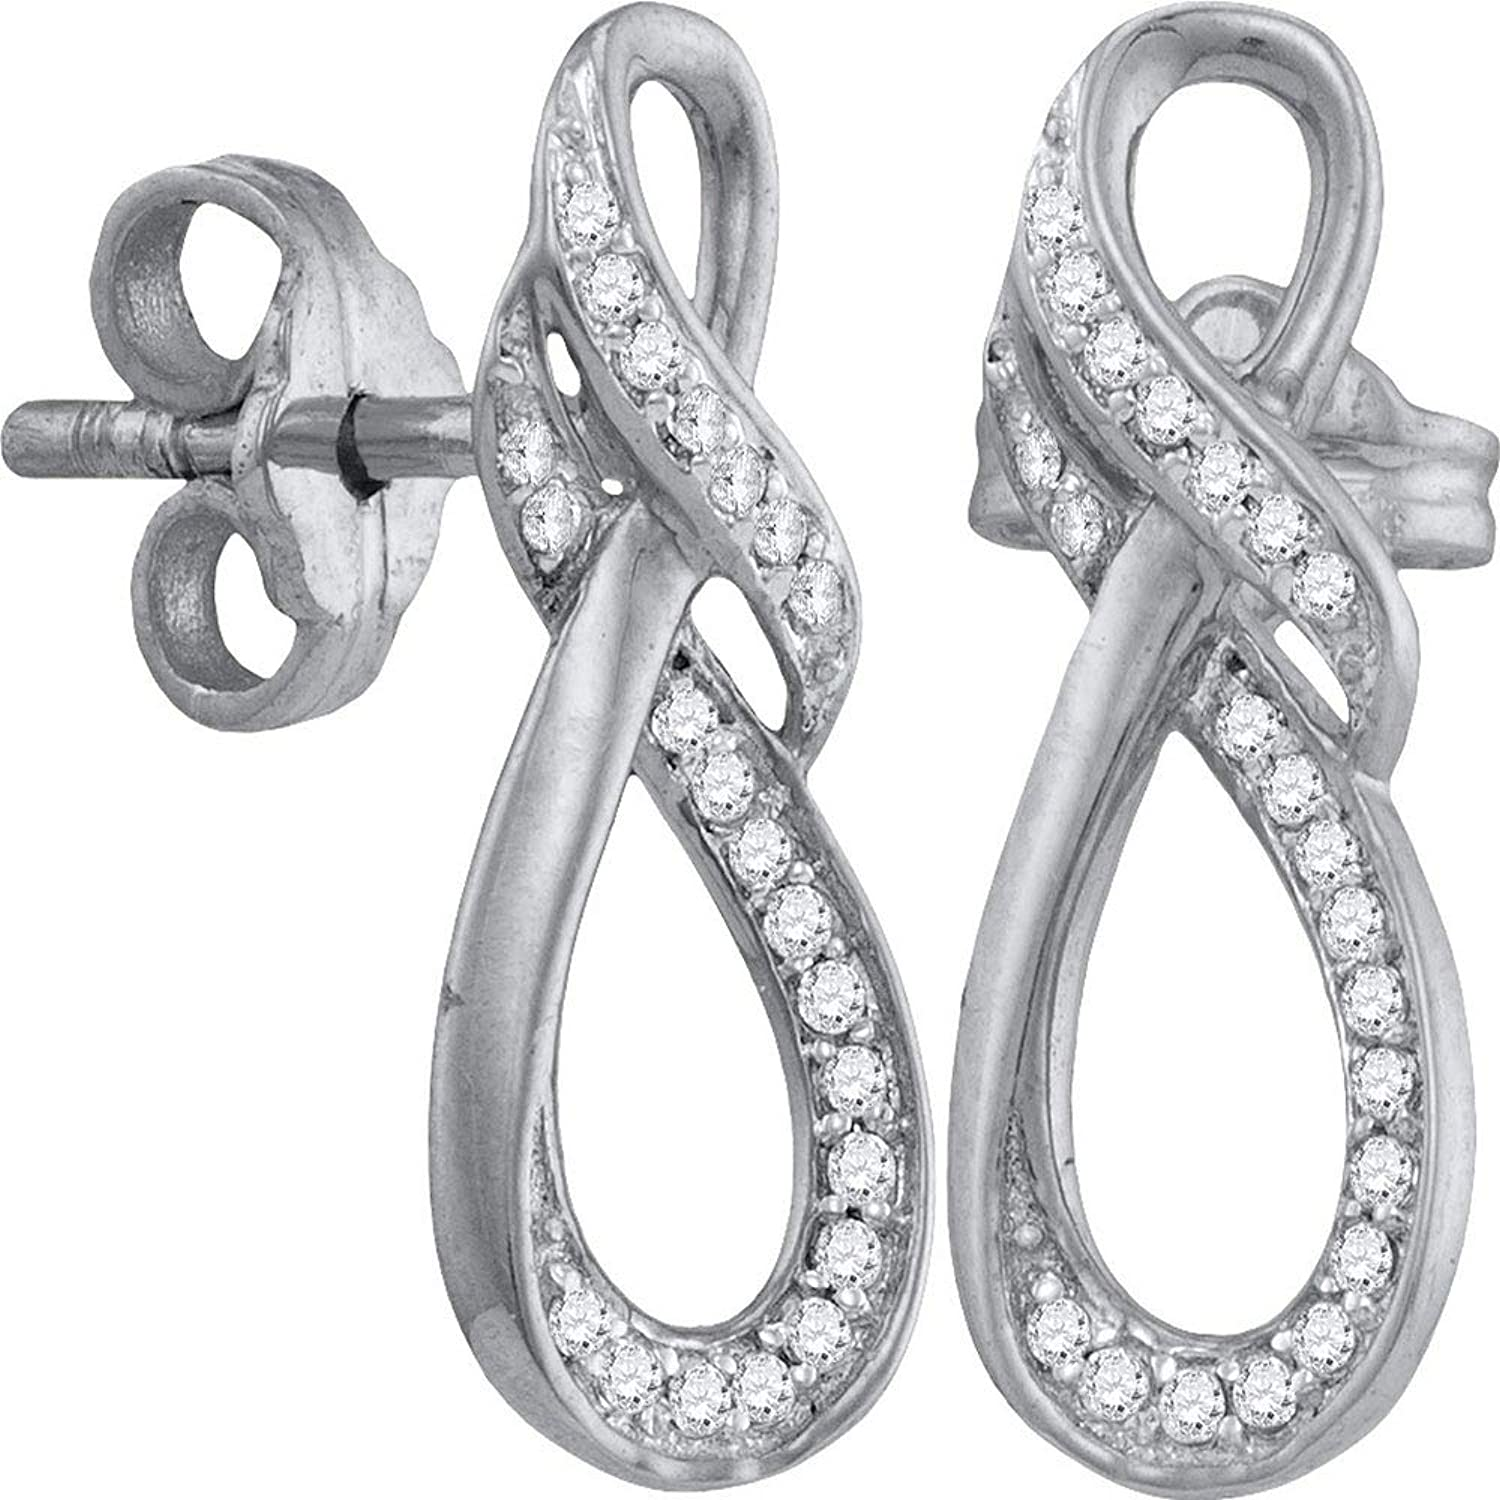 10kt White gold Womens Round Diamond Infinity Screwback Earrings 1 6 Cttw